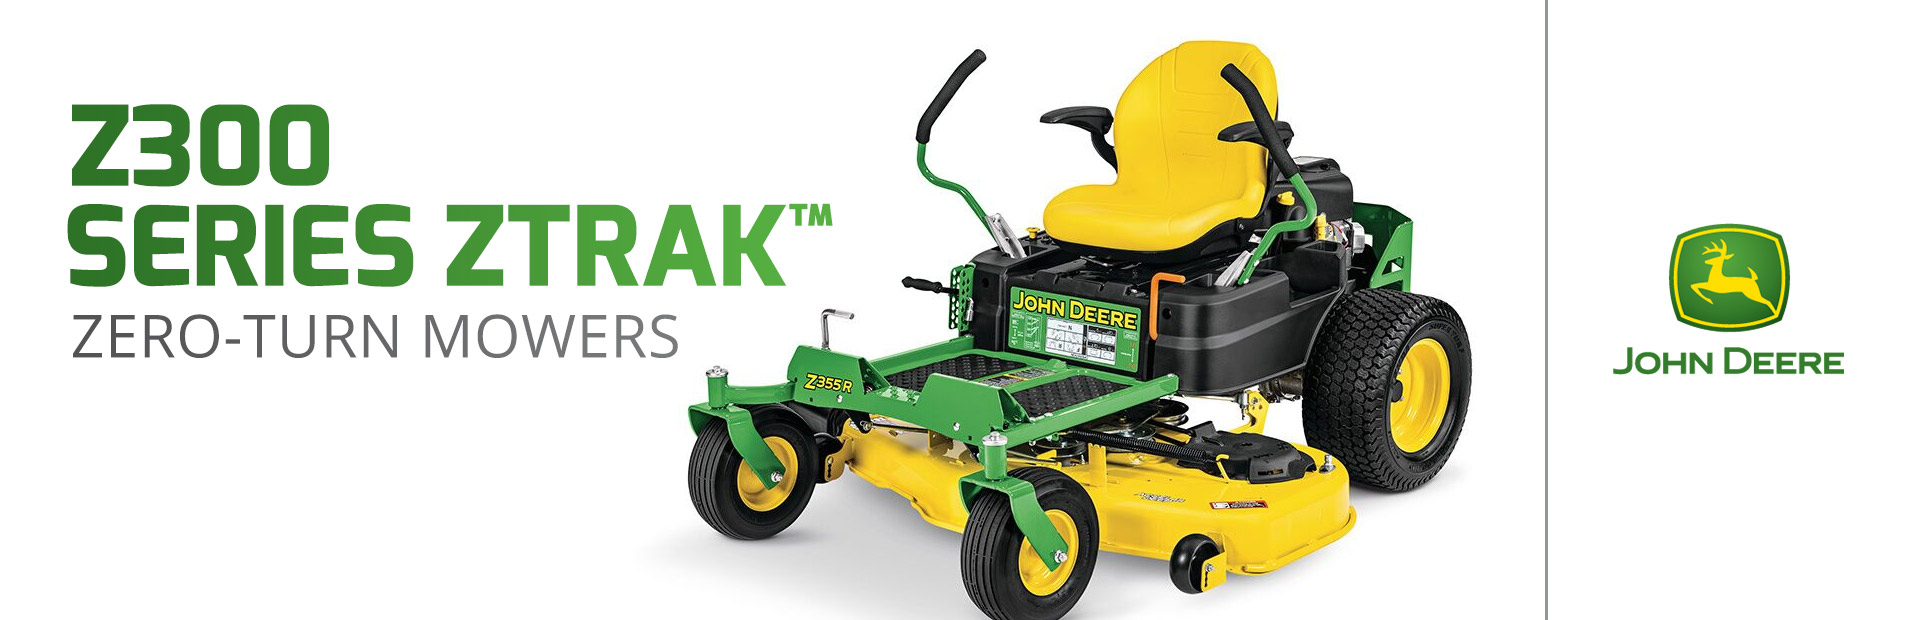 John Deere: Z300 Series ZTrak™ Zero-Turn Mowers